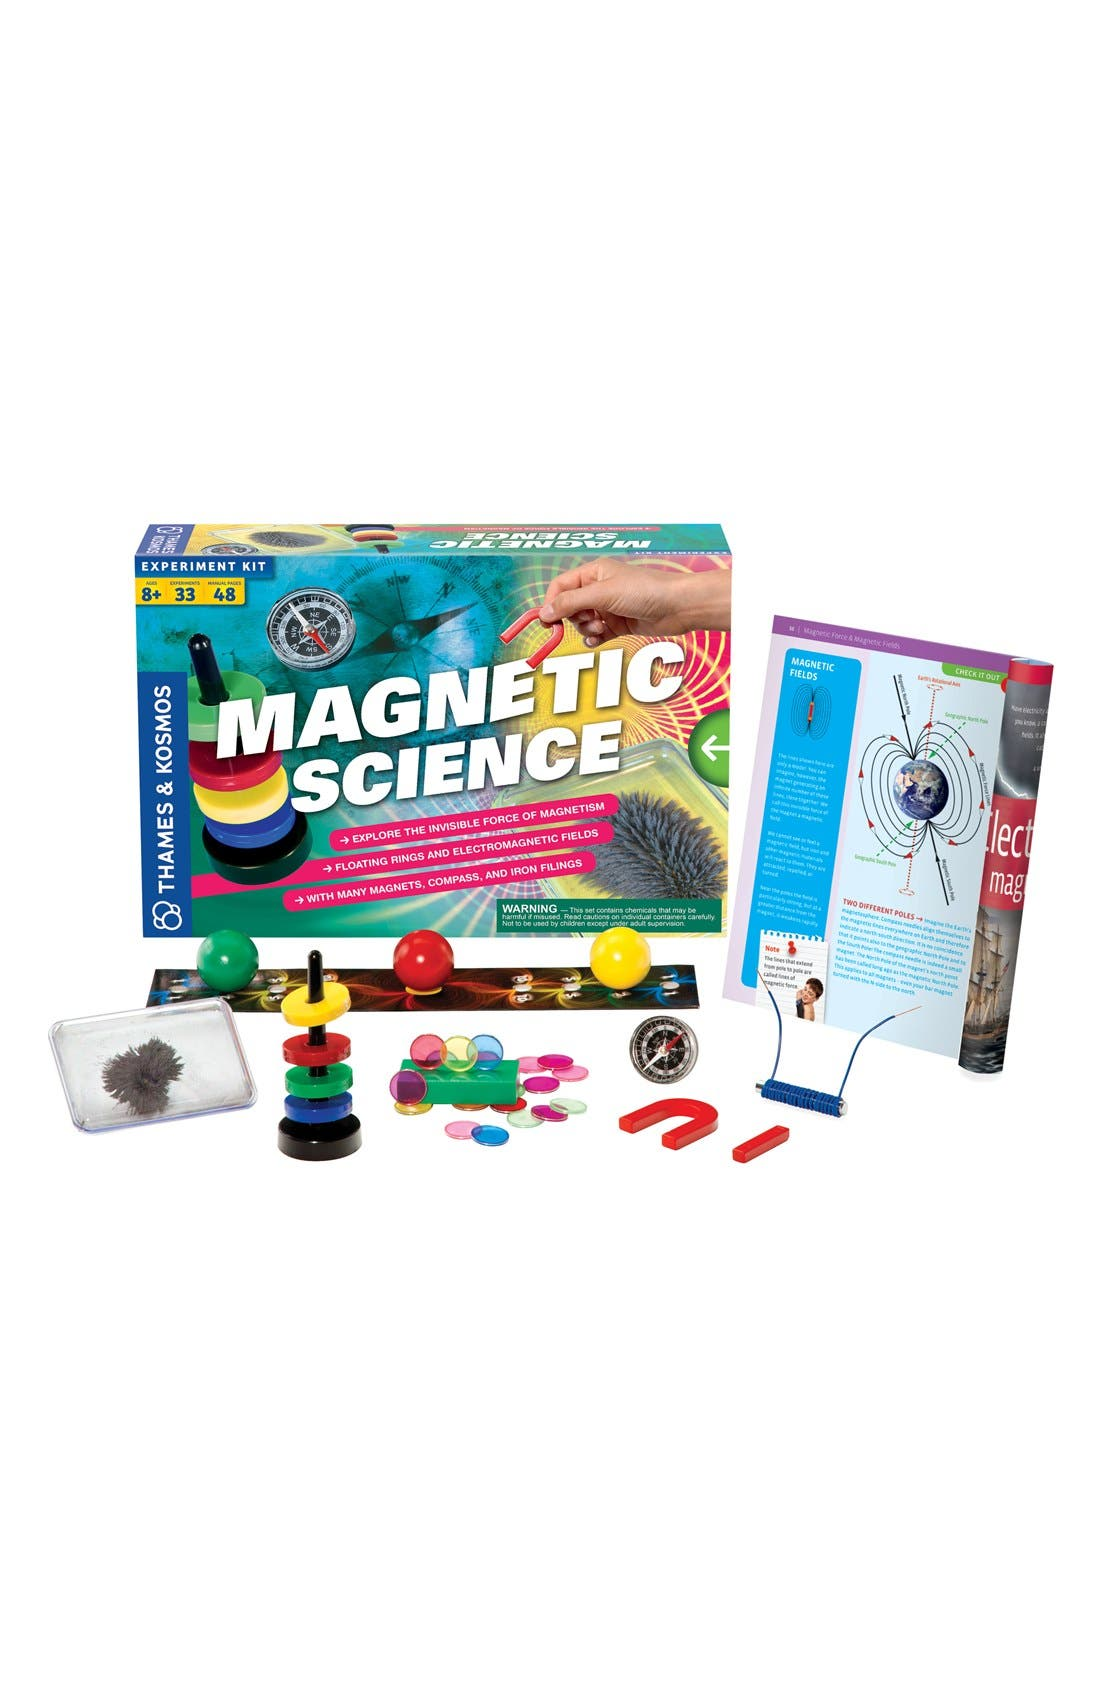 Alternate Image 1 Selected - Thames & Kosmos 'Magnetic Science' Experiment Kit